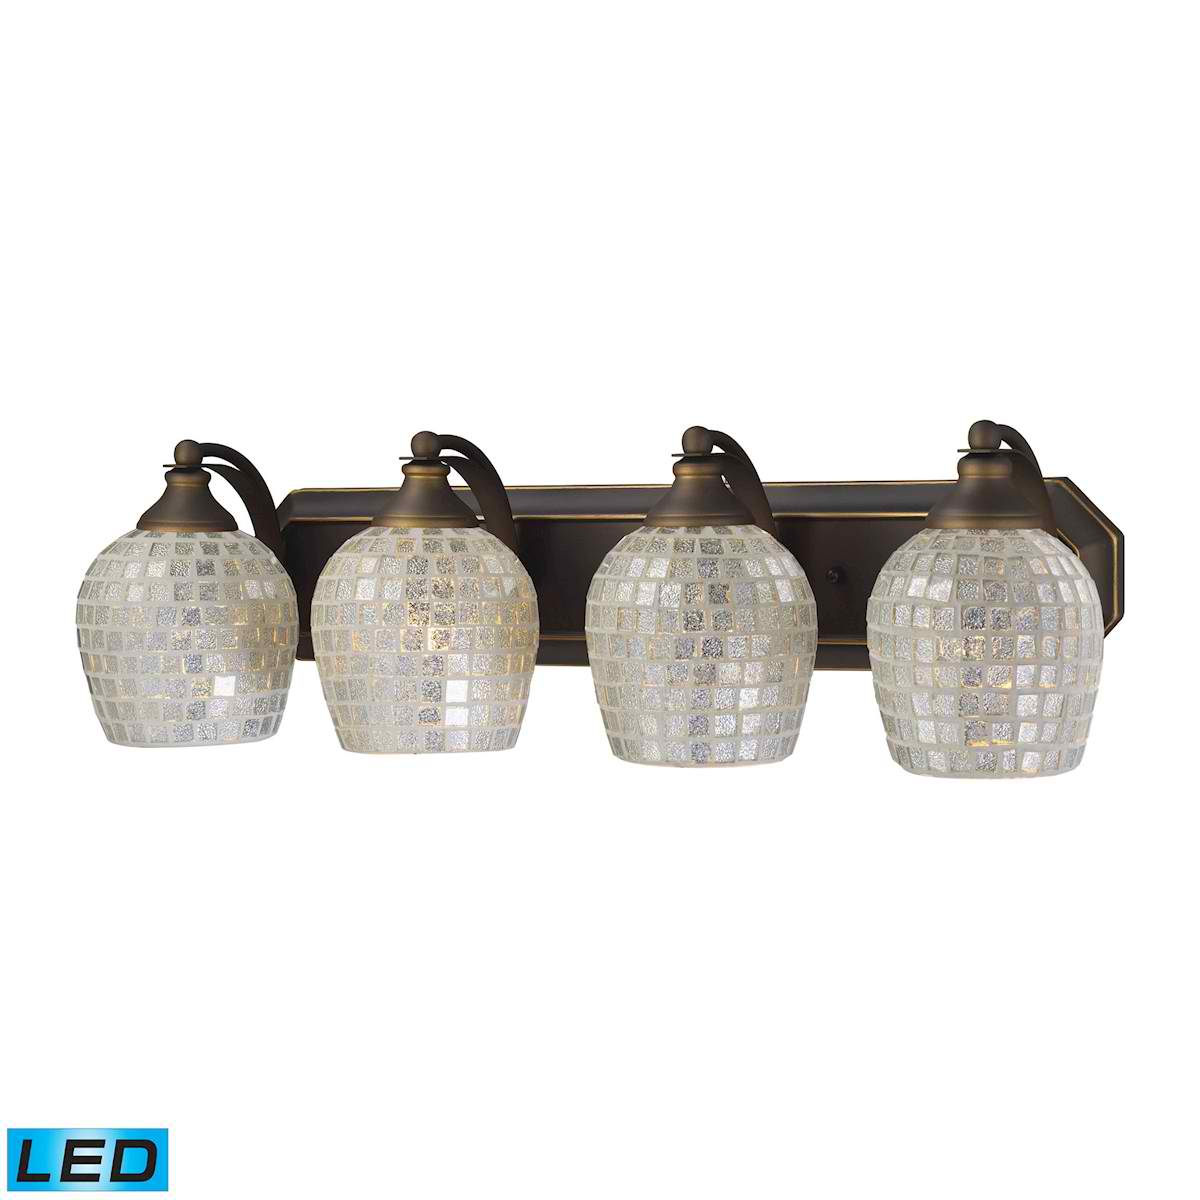 4 Light Vanity in Aged Bronze and Silver Mosaic Glass - LED, 800 Lumens (3200 Lumens Total) with Full Scale